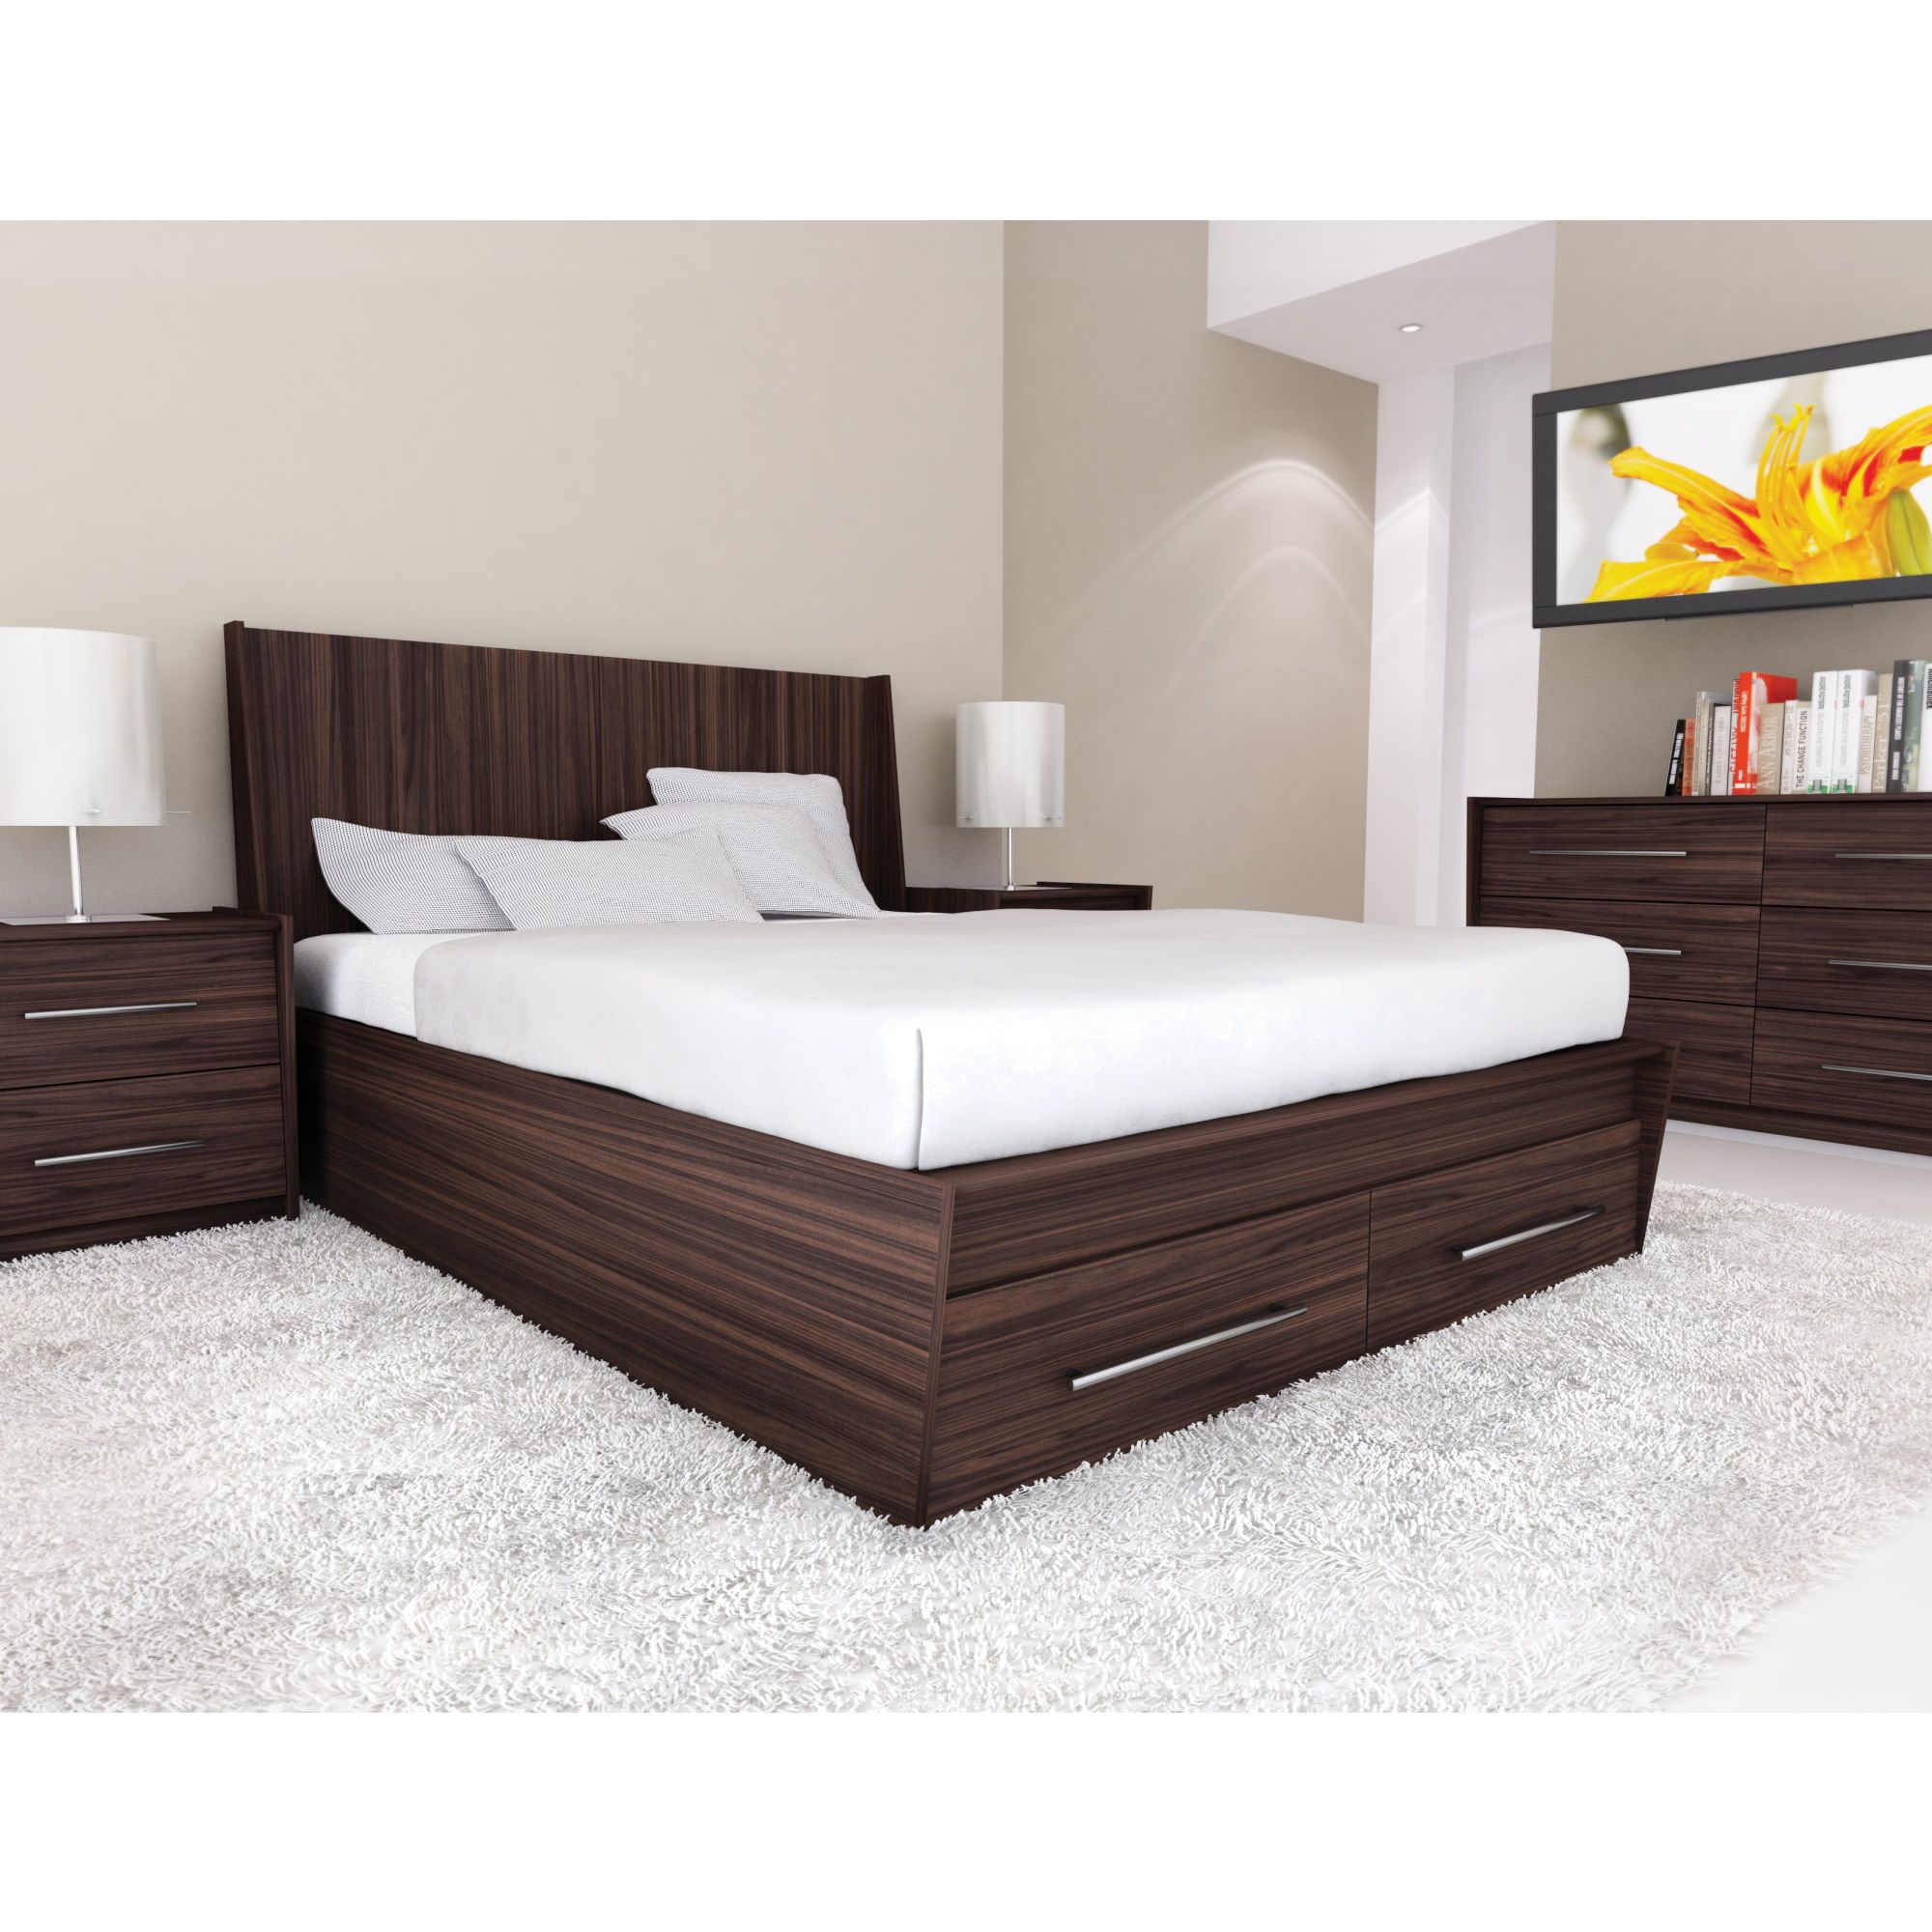 Bed designs for your comfortable bedroom interior design for Modern wooden bedroom designs